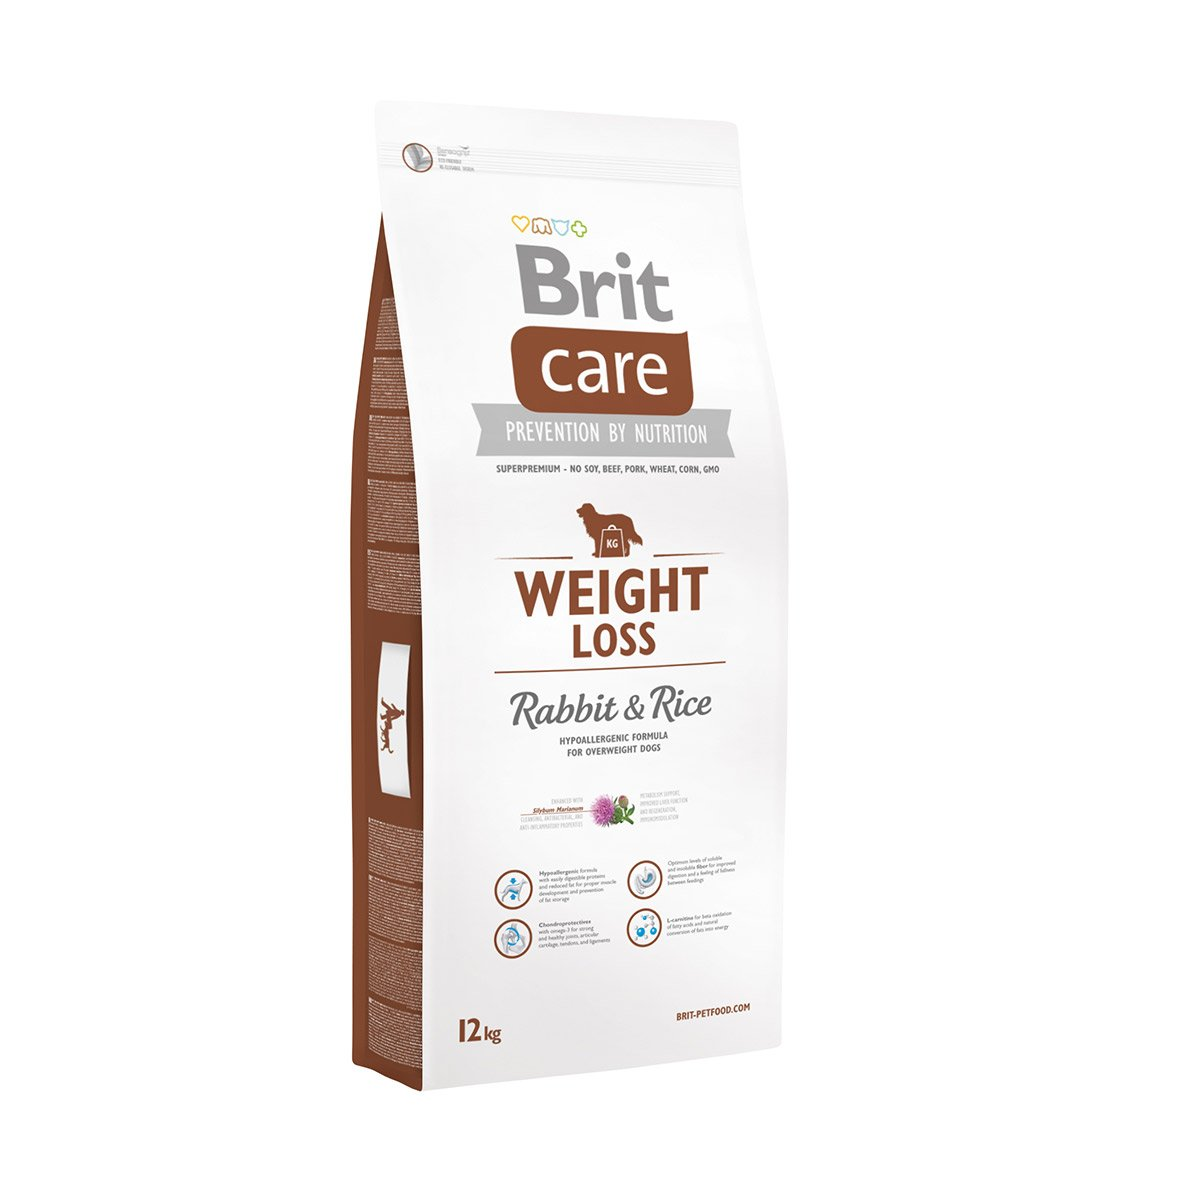 Brit Care Dog Weight Loss Rabbit & Rice 2x12kg von Brit